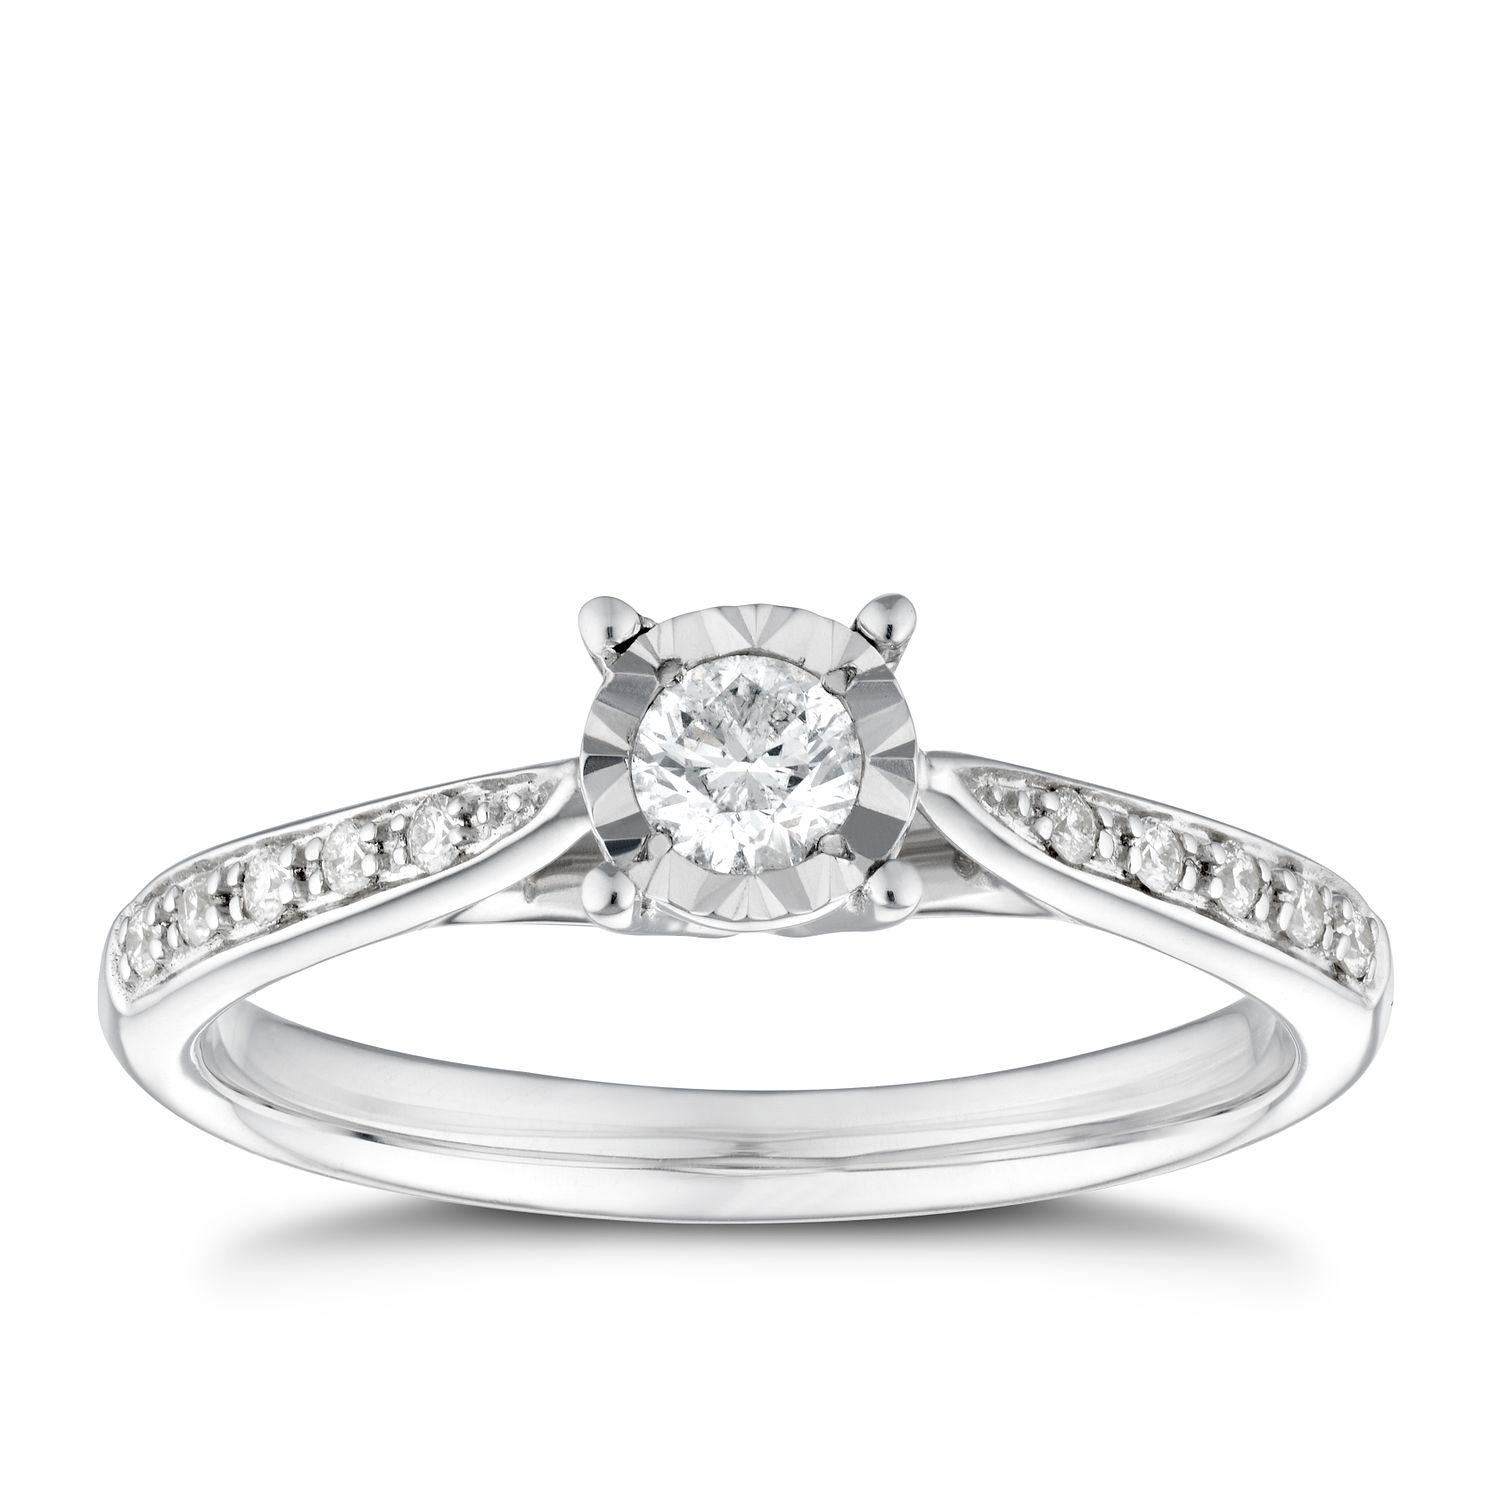 ring the gratissimo mount solitaire jewellery